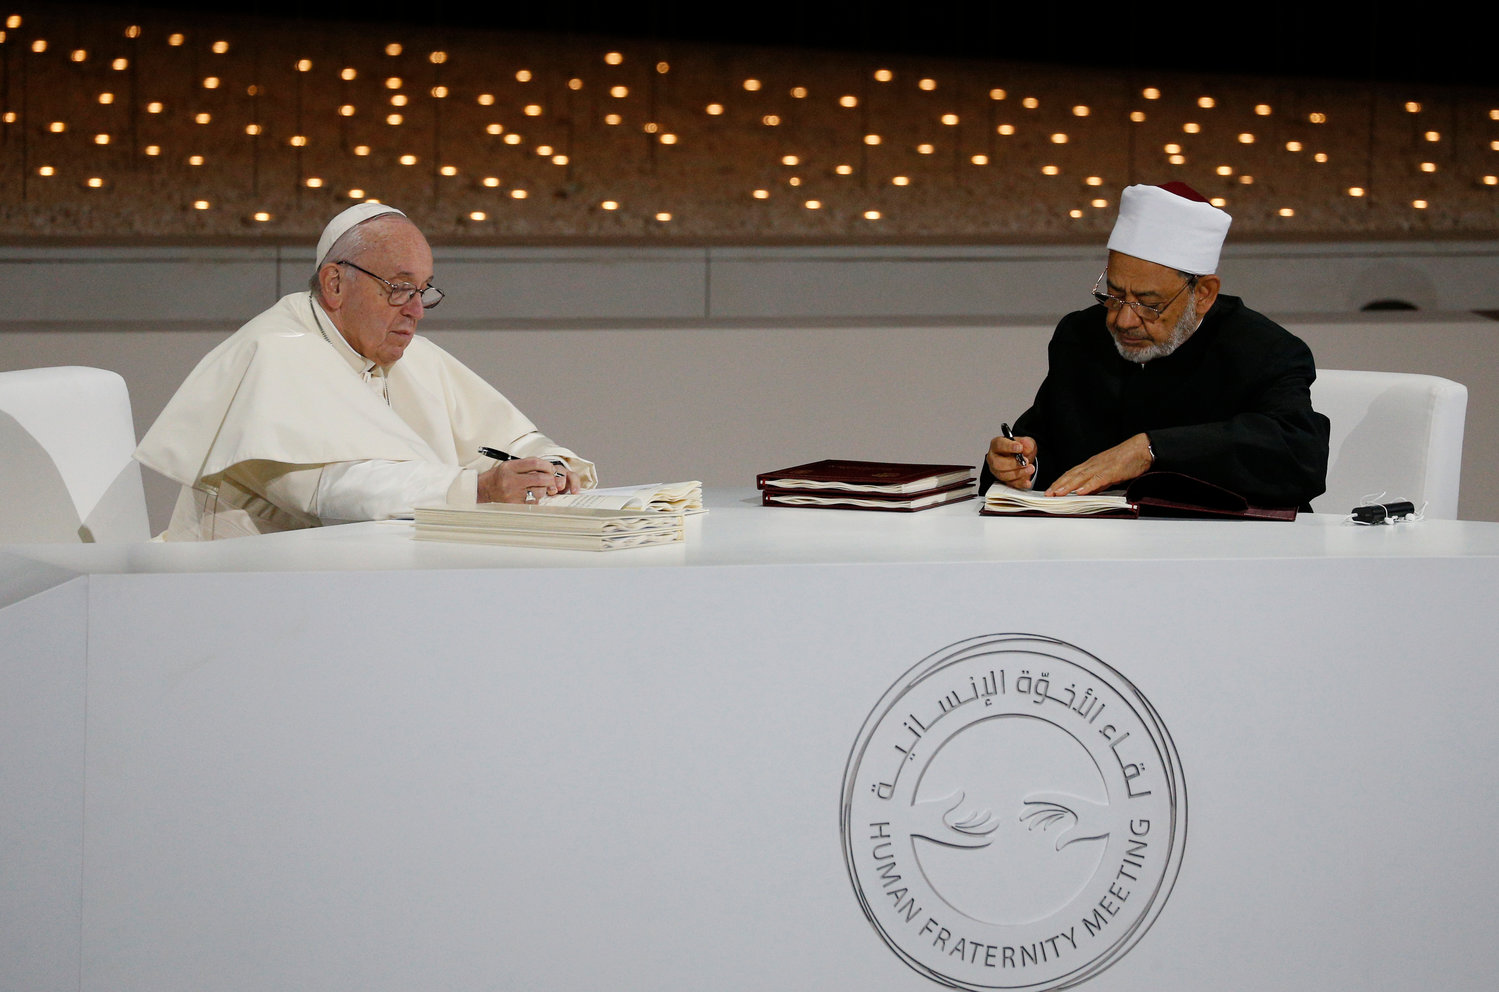 Pope Francis and Sheik Ahmad el-Tayeb, grand imam of Egypt's al-Azhar mosque and university, sign documents during an interreligious meeting at the Founder's Memorial in Abu Dhabi, United Arab Emirates, Feb. 4.